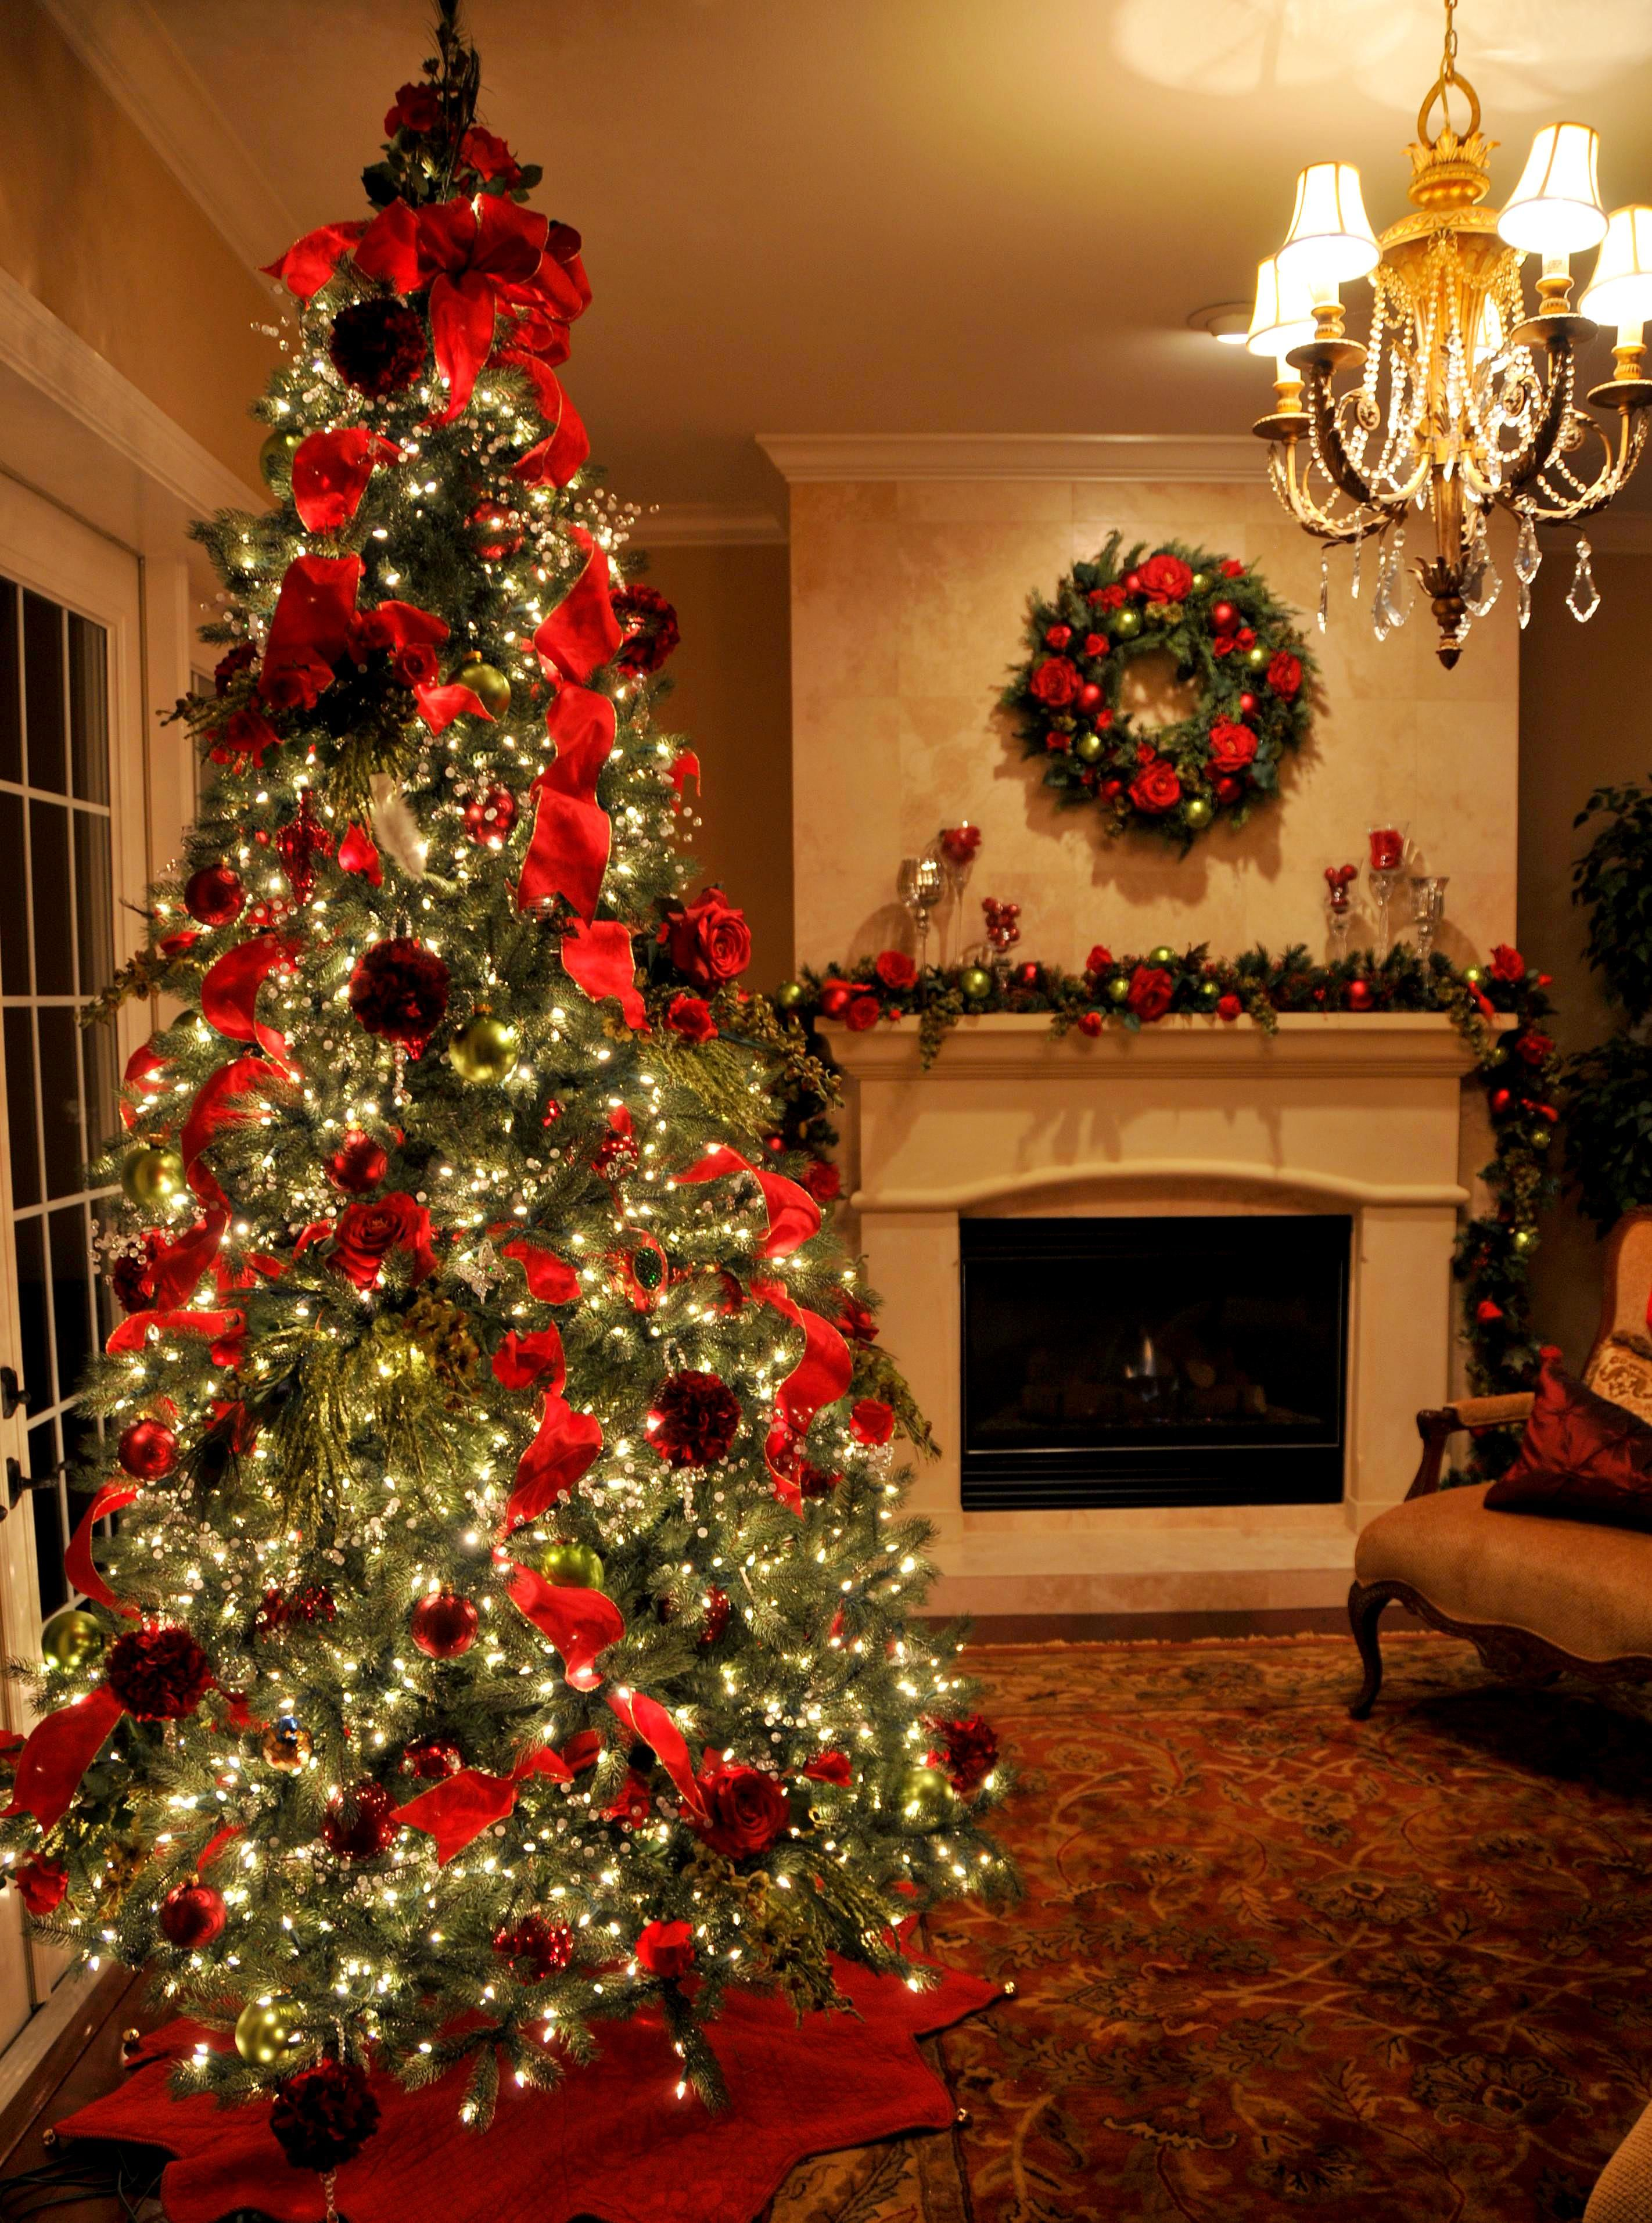 Red Christmas Decorations Pictures, Photos, and Images for ...